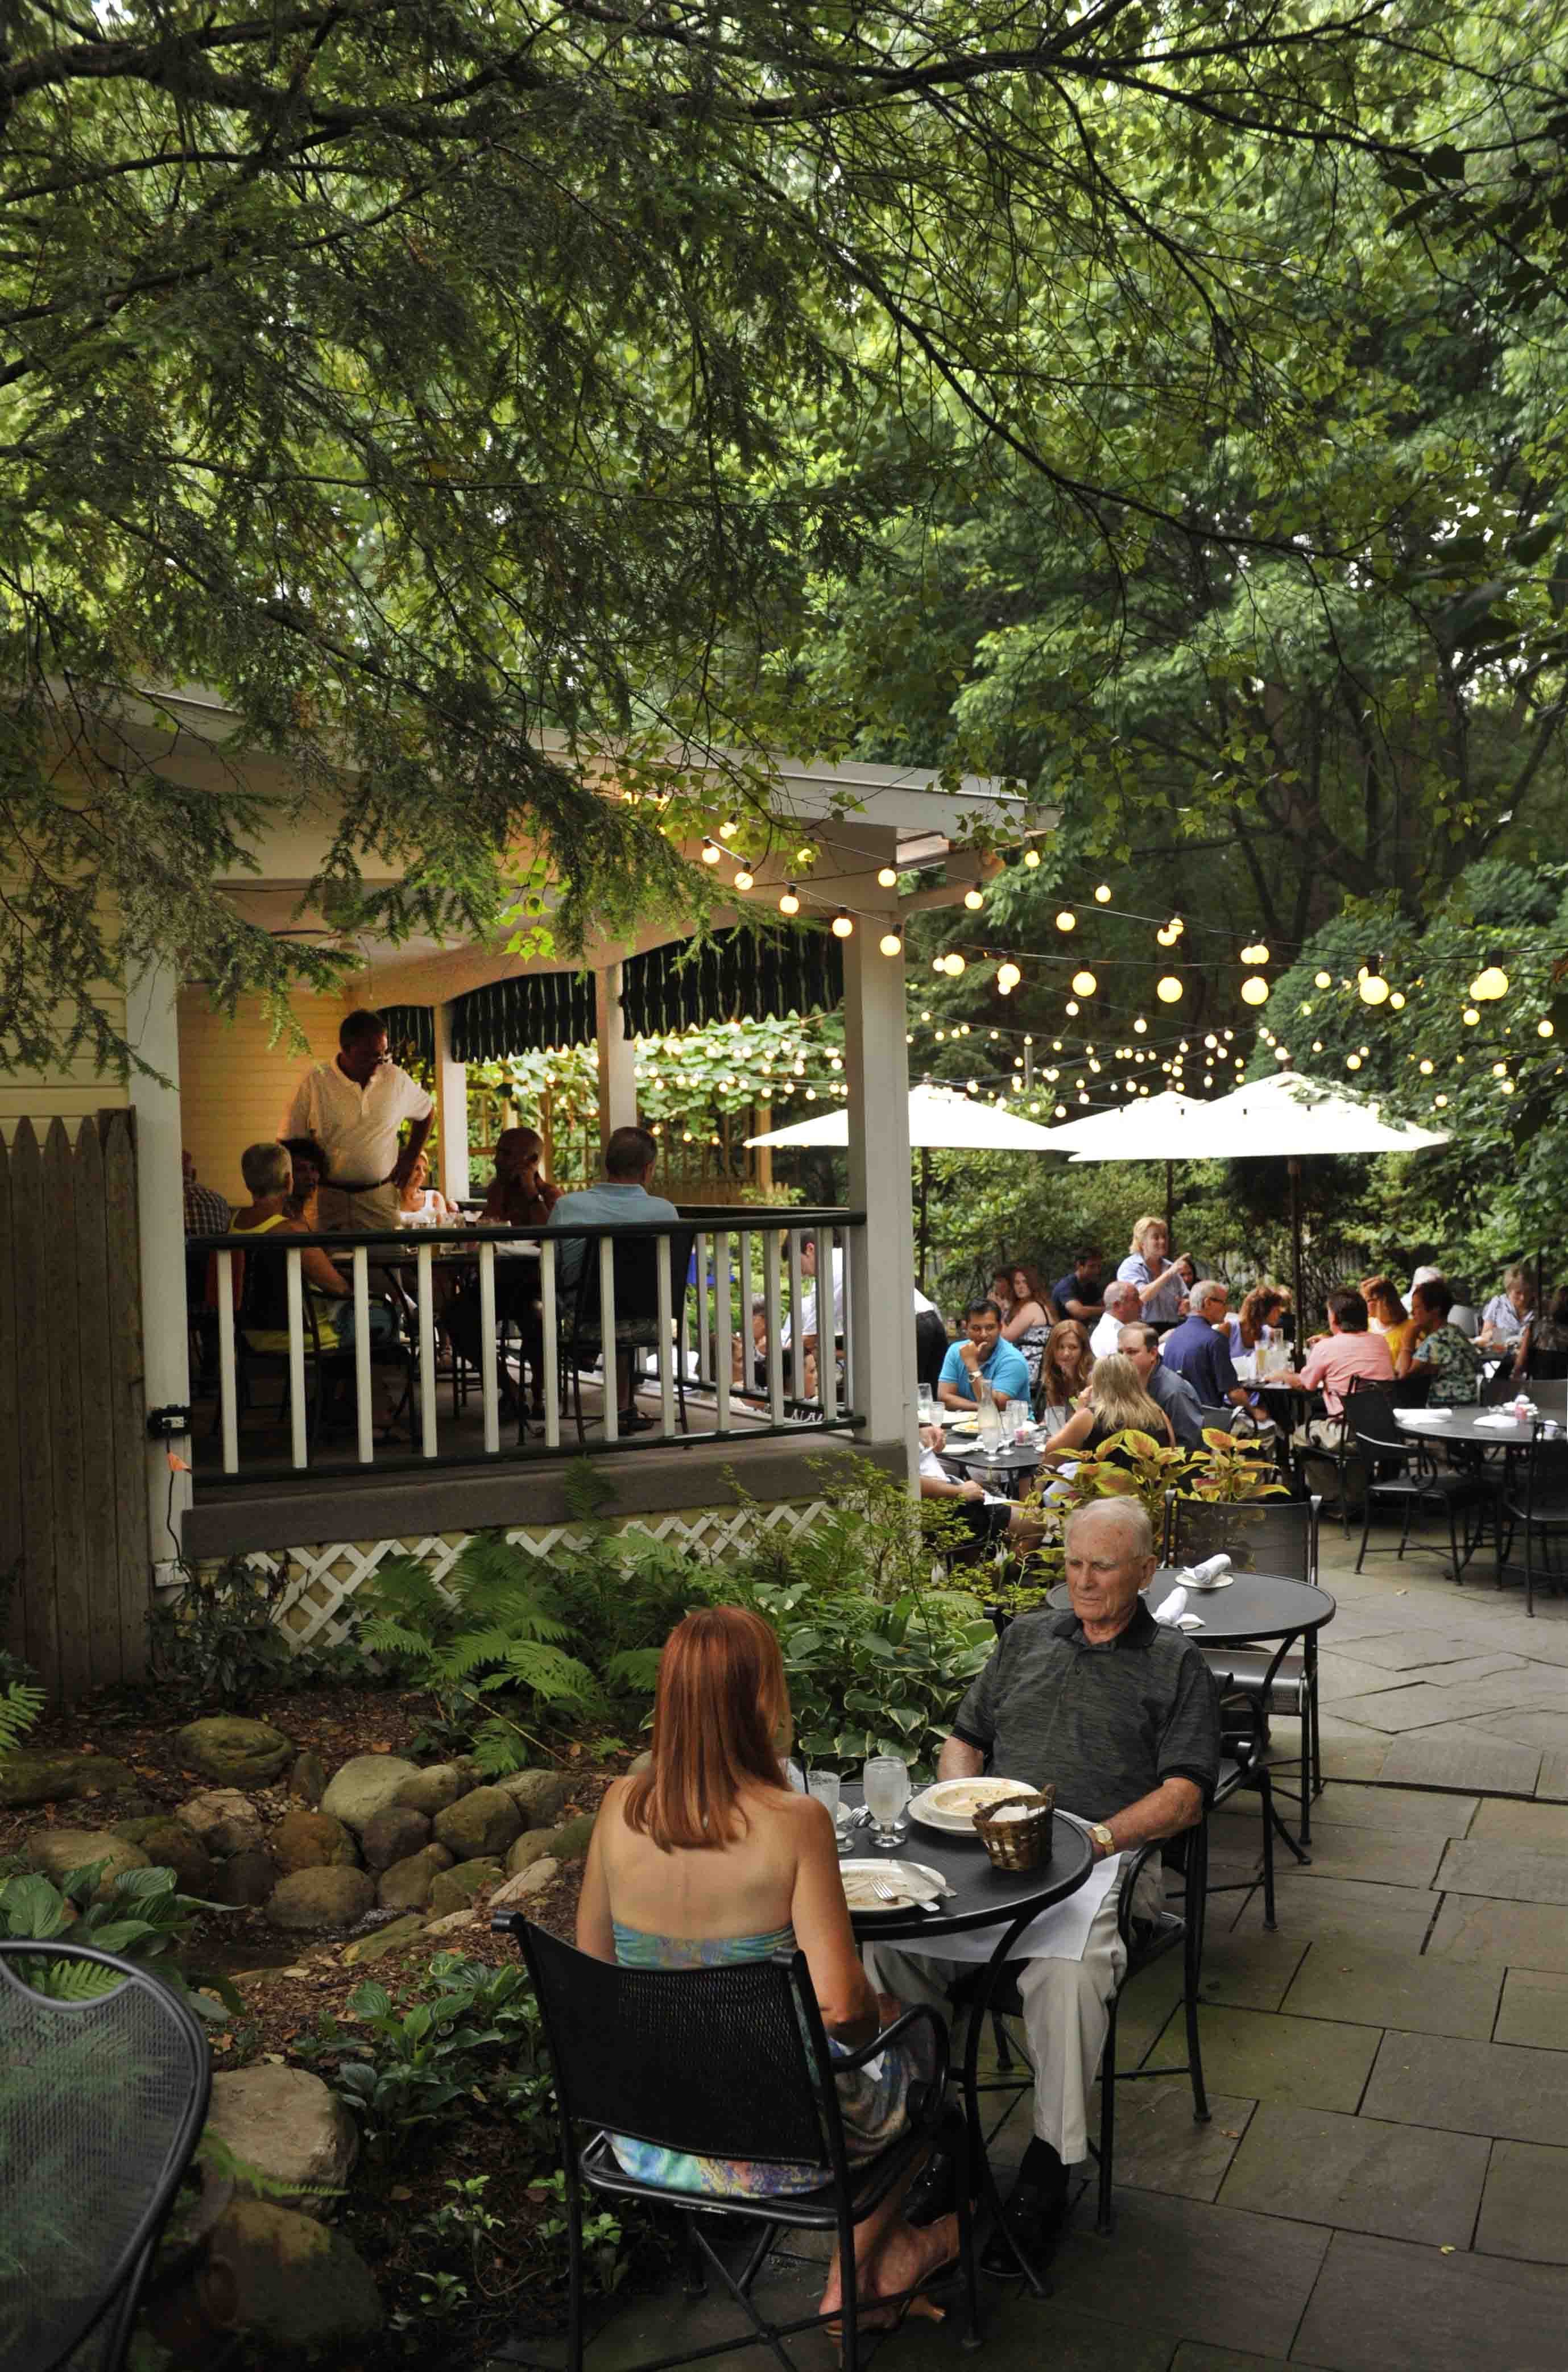 The Pines Tavern offers easygoing outdoor dining and the perfect atmosphere for a summer night.